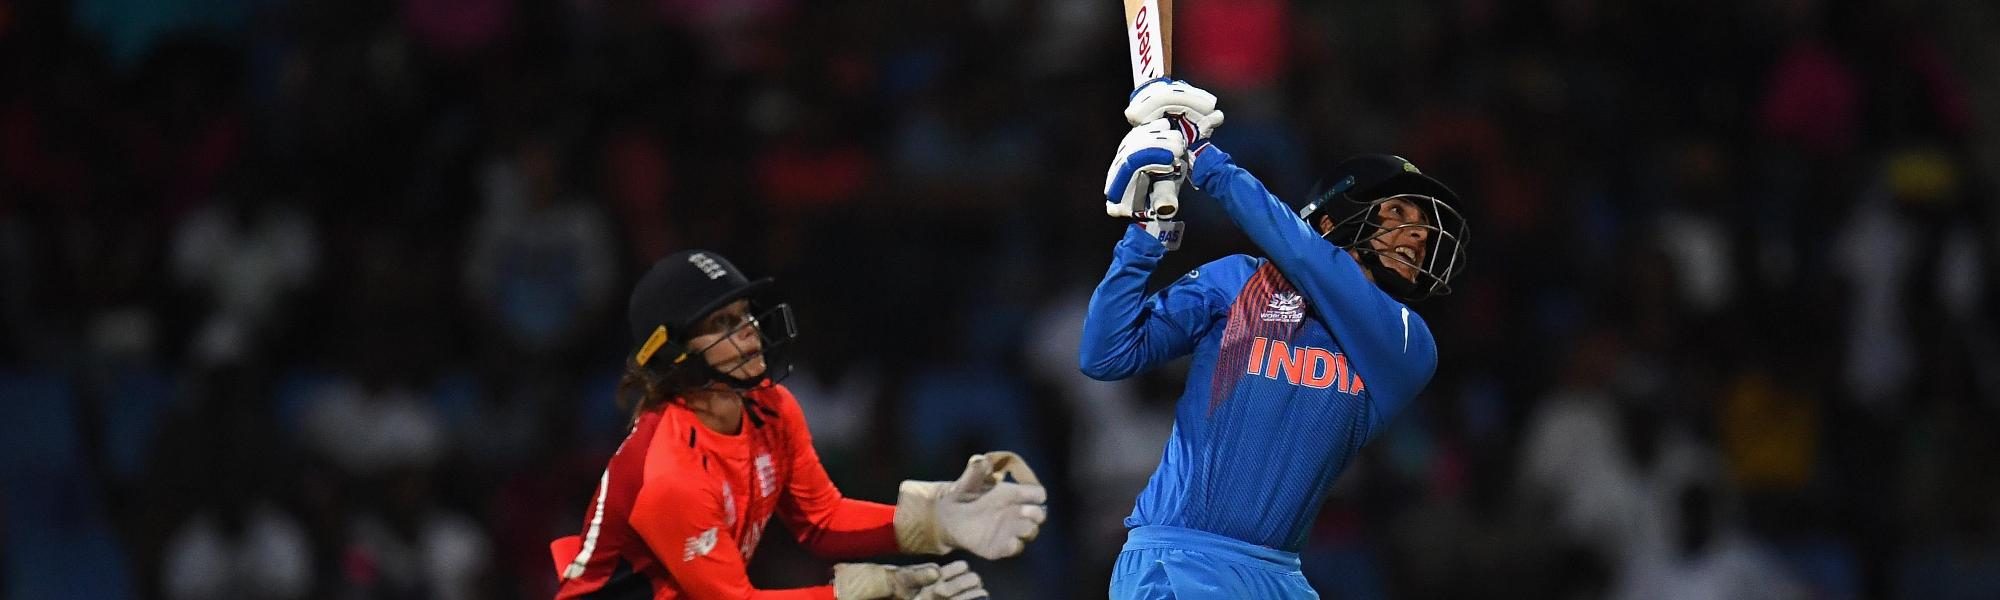 Smriti Mandhana of India bats during the ICC Women's World T20 2018 Semi-Final match between England and India at Sir Viv Richards Cricket Ground on November 22, 2018 in Antigua, Antigua and Barbuda.